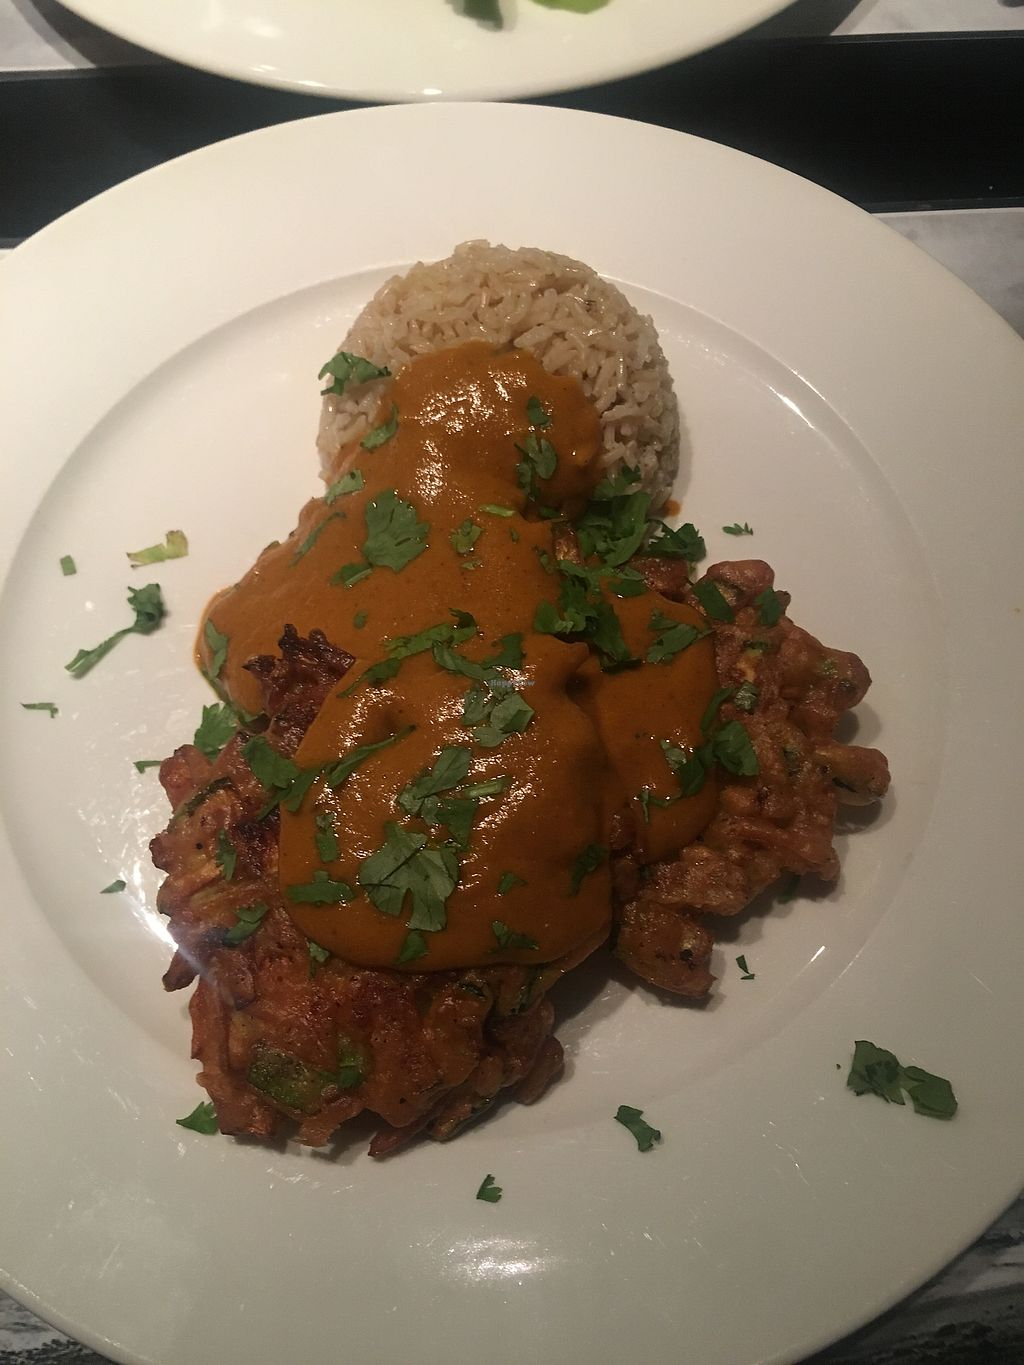 """Photo of Lady Green Bio-Vegetarian Restaurant  by <a href=""""/members/profile/KimMartin"""">KimMartin</a> <br/>Coconut curry <br/> September 2, 2017  - <a href='/contact/abuse/image/36048/300250'>Report</a>"""